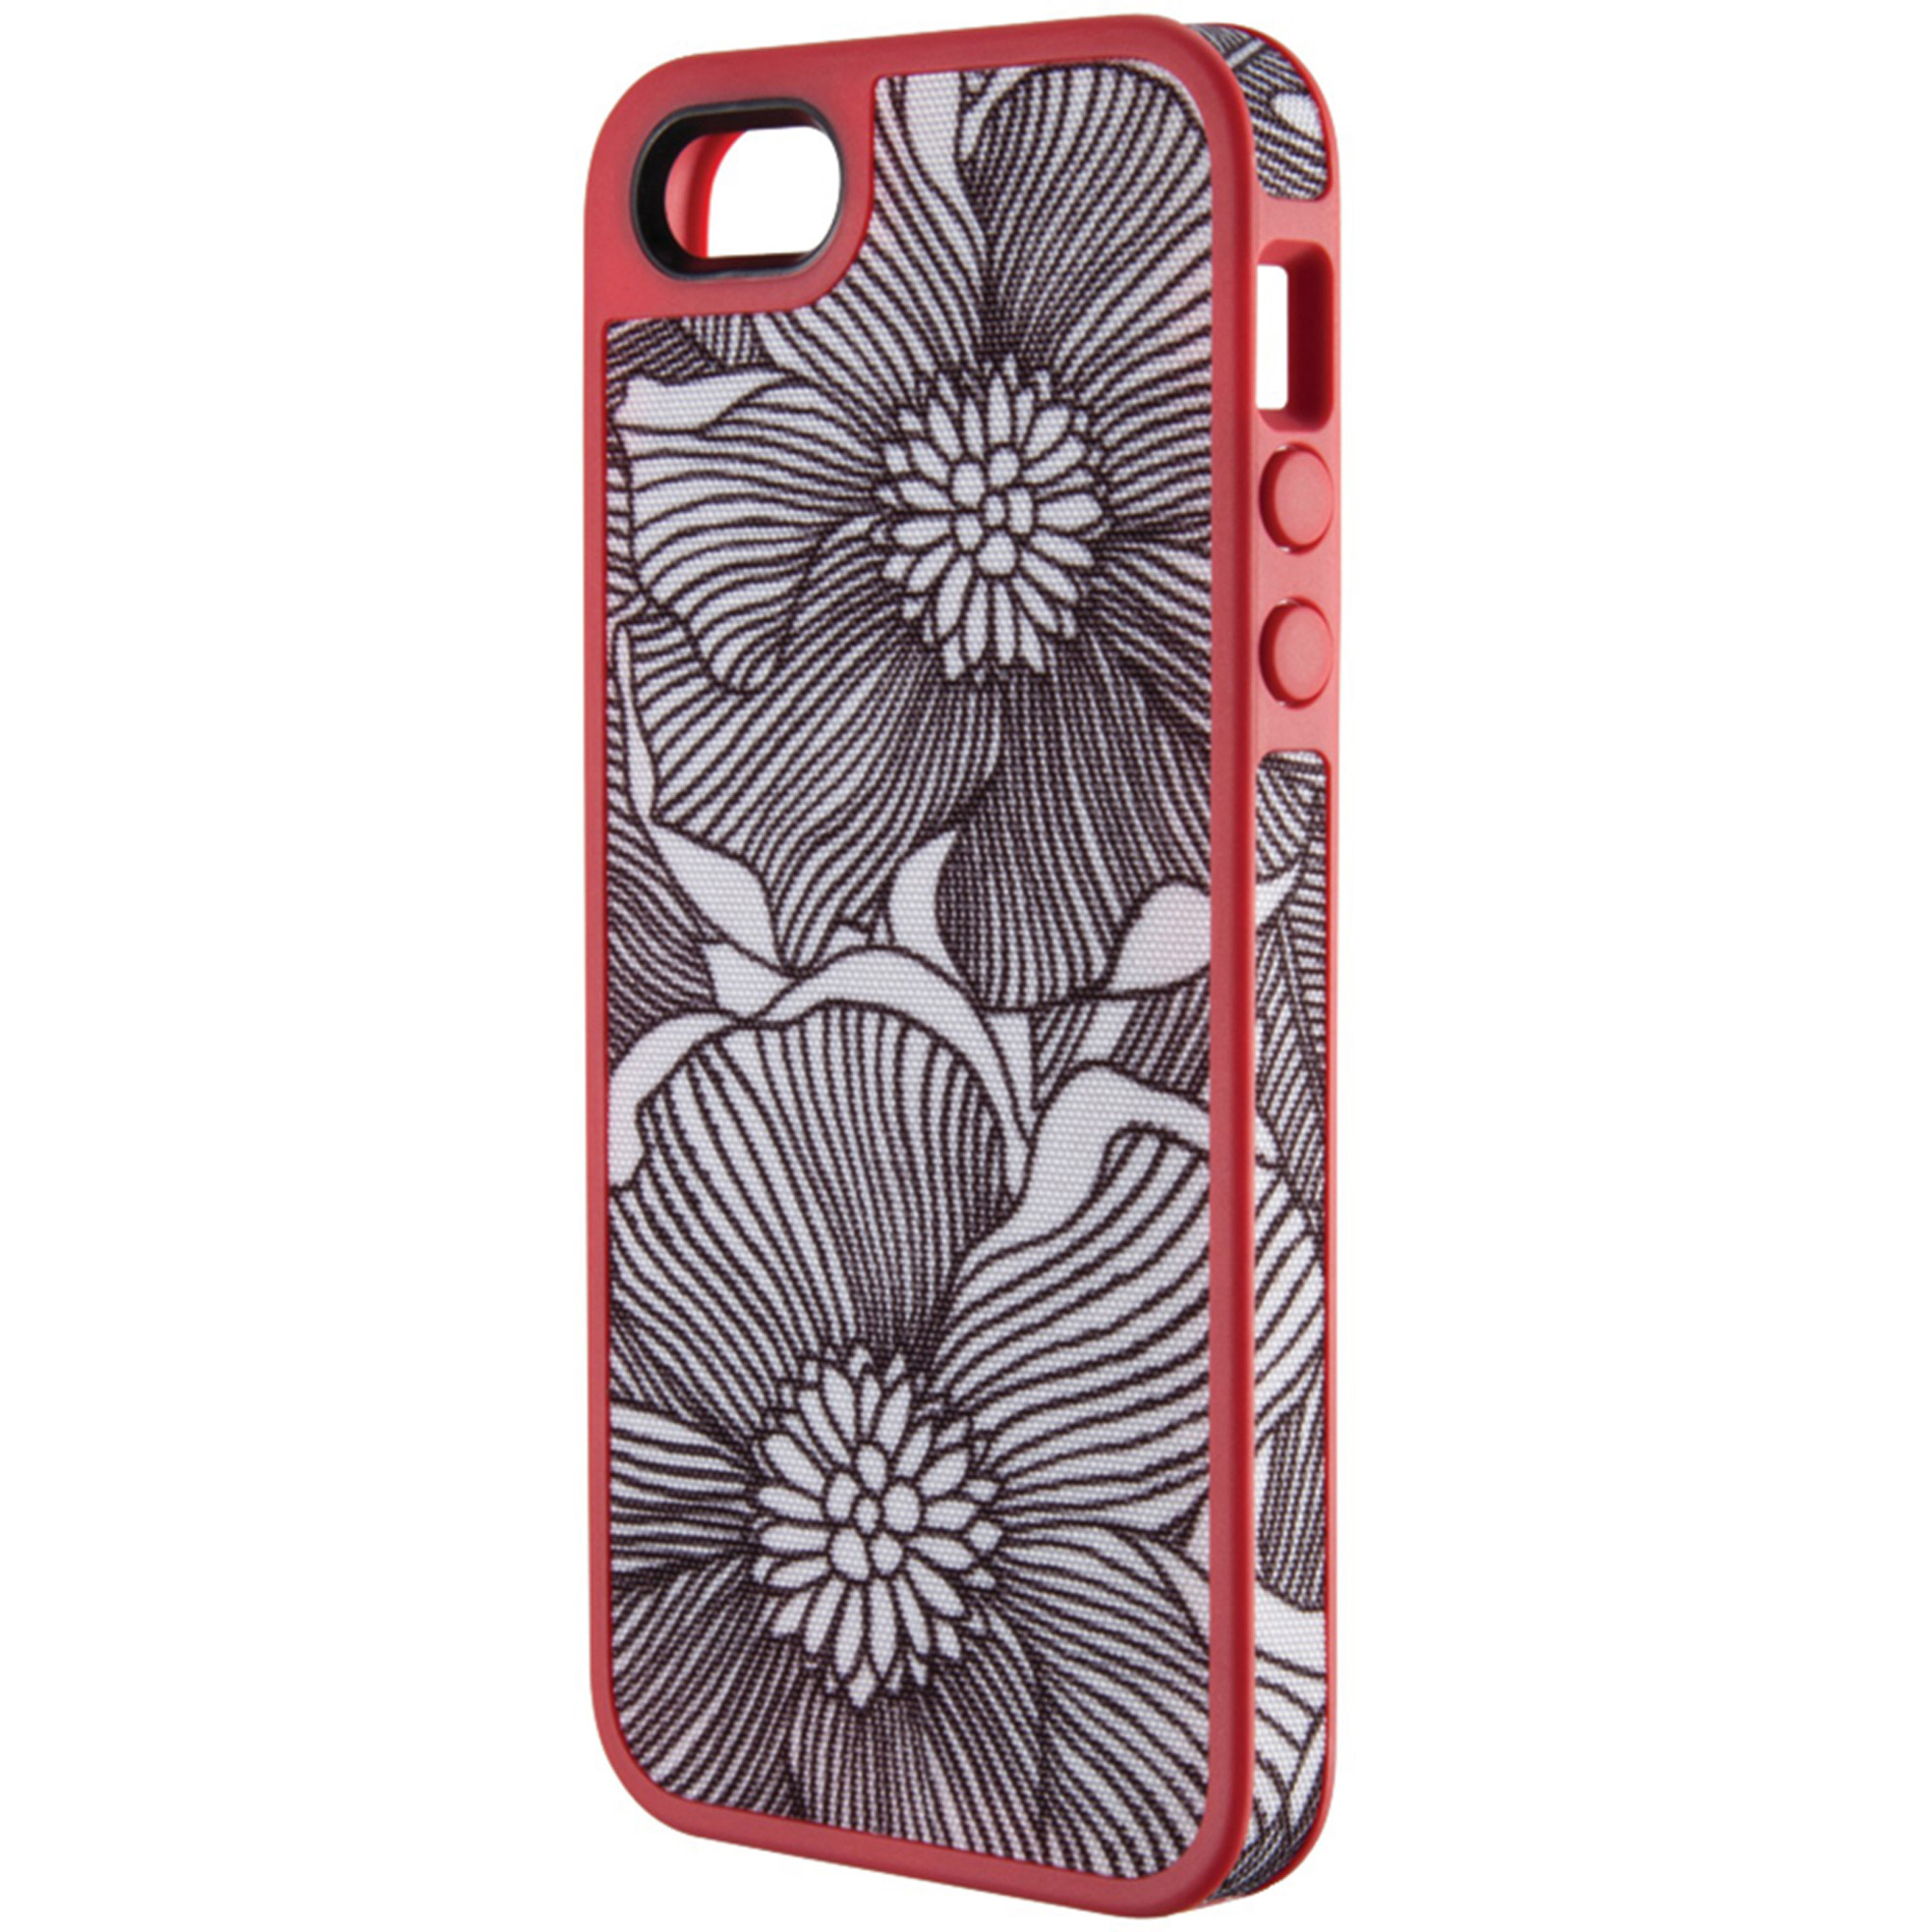 Speck Spk-a0764 Apple iPhone 5/5s Fabshell Case Freshbloom Coral Pink/Black